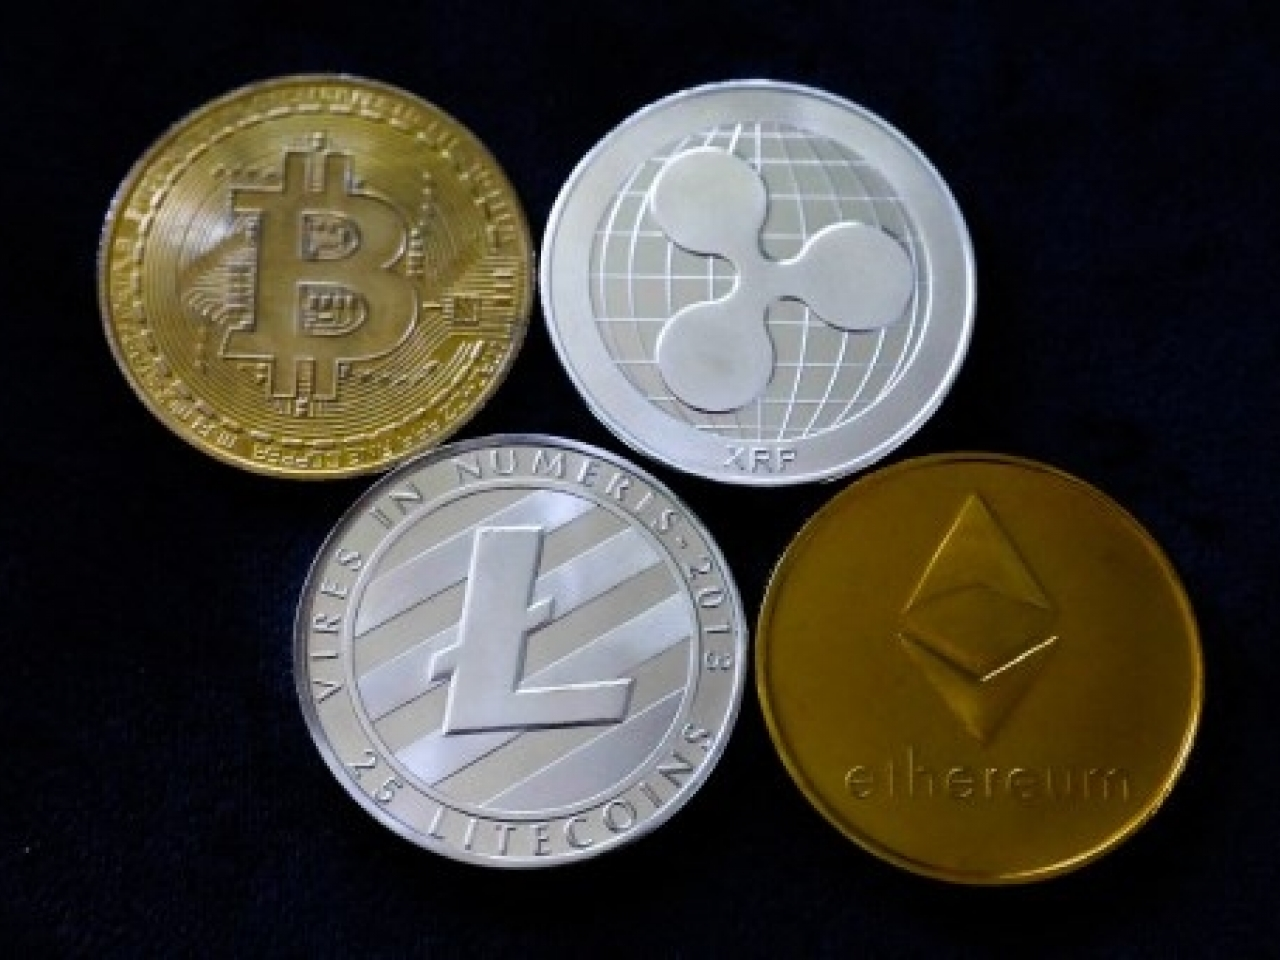 Formerly something of an investment sideshow dominated by computer geeks, cryptocurrencies are sparking greater interest among mainstream investors. Photo: AFP